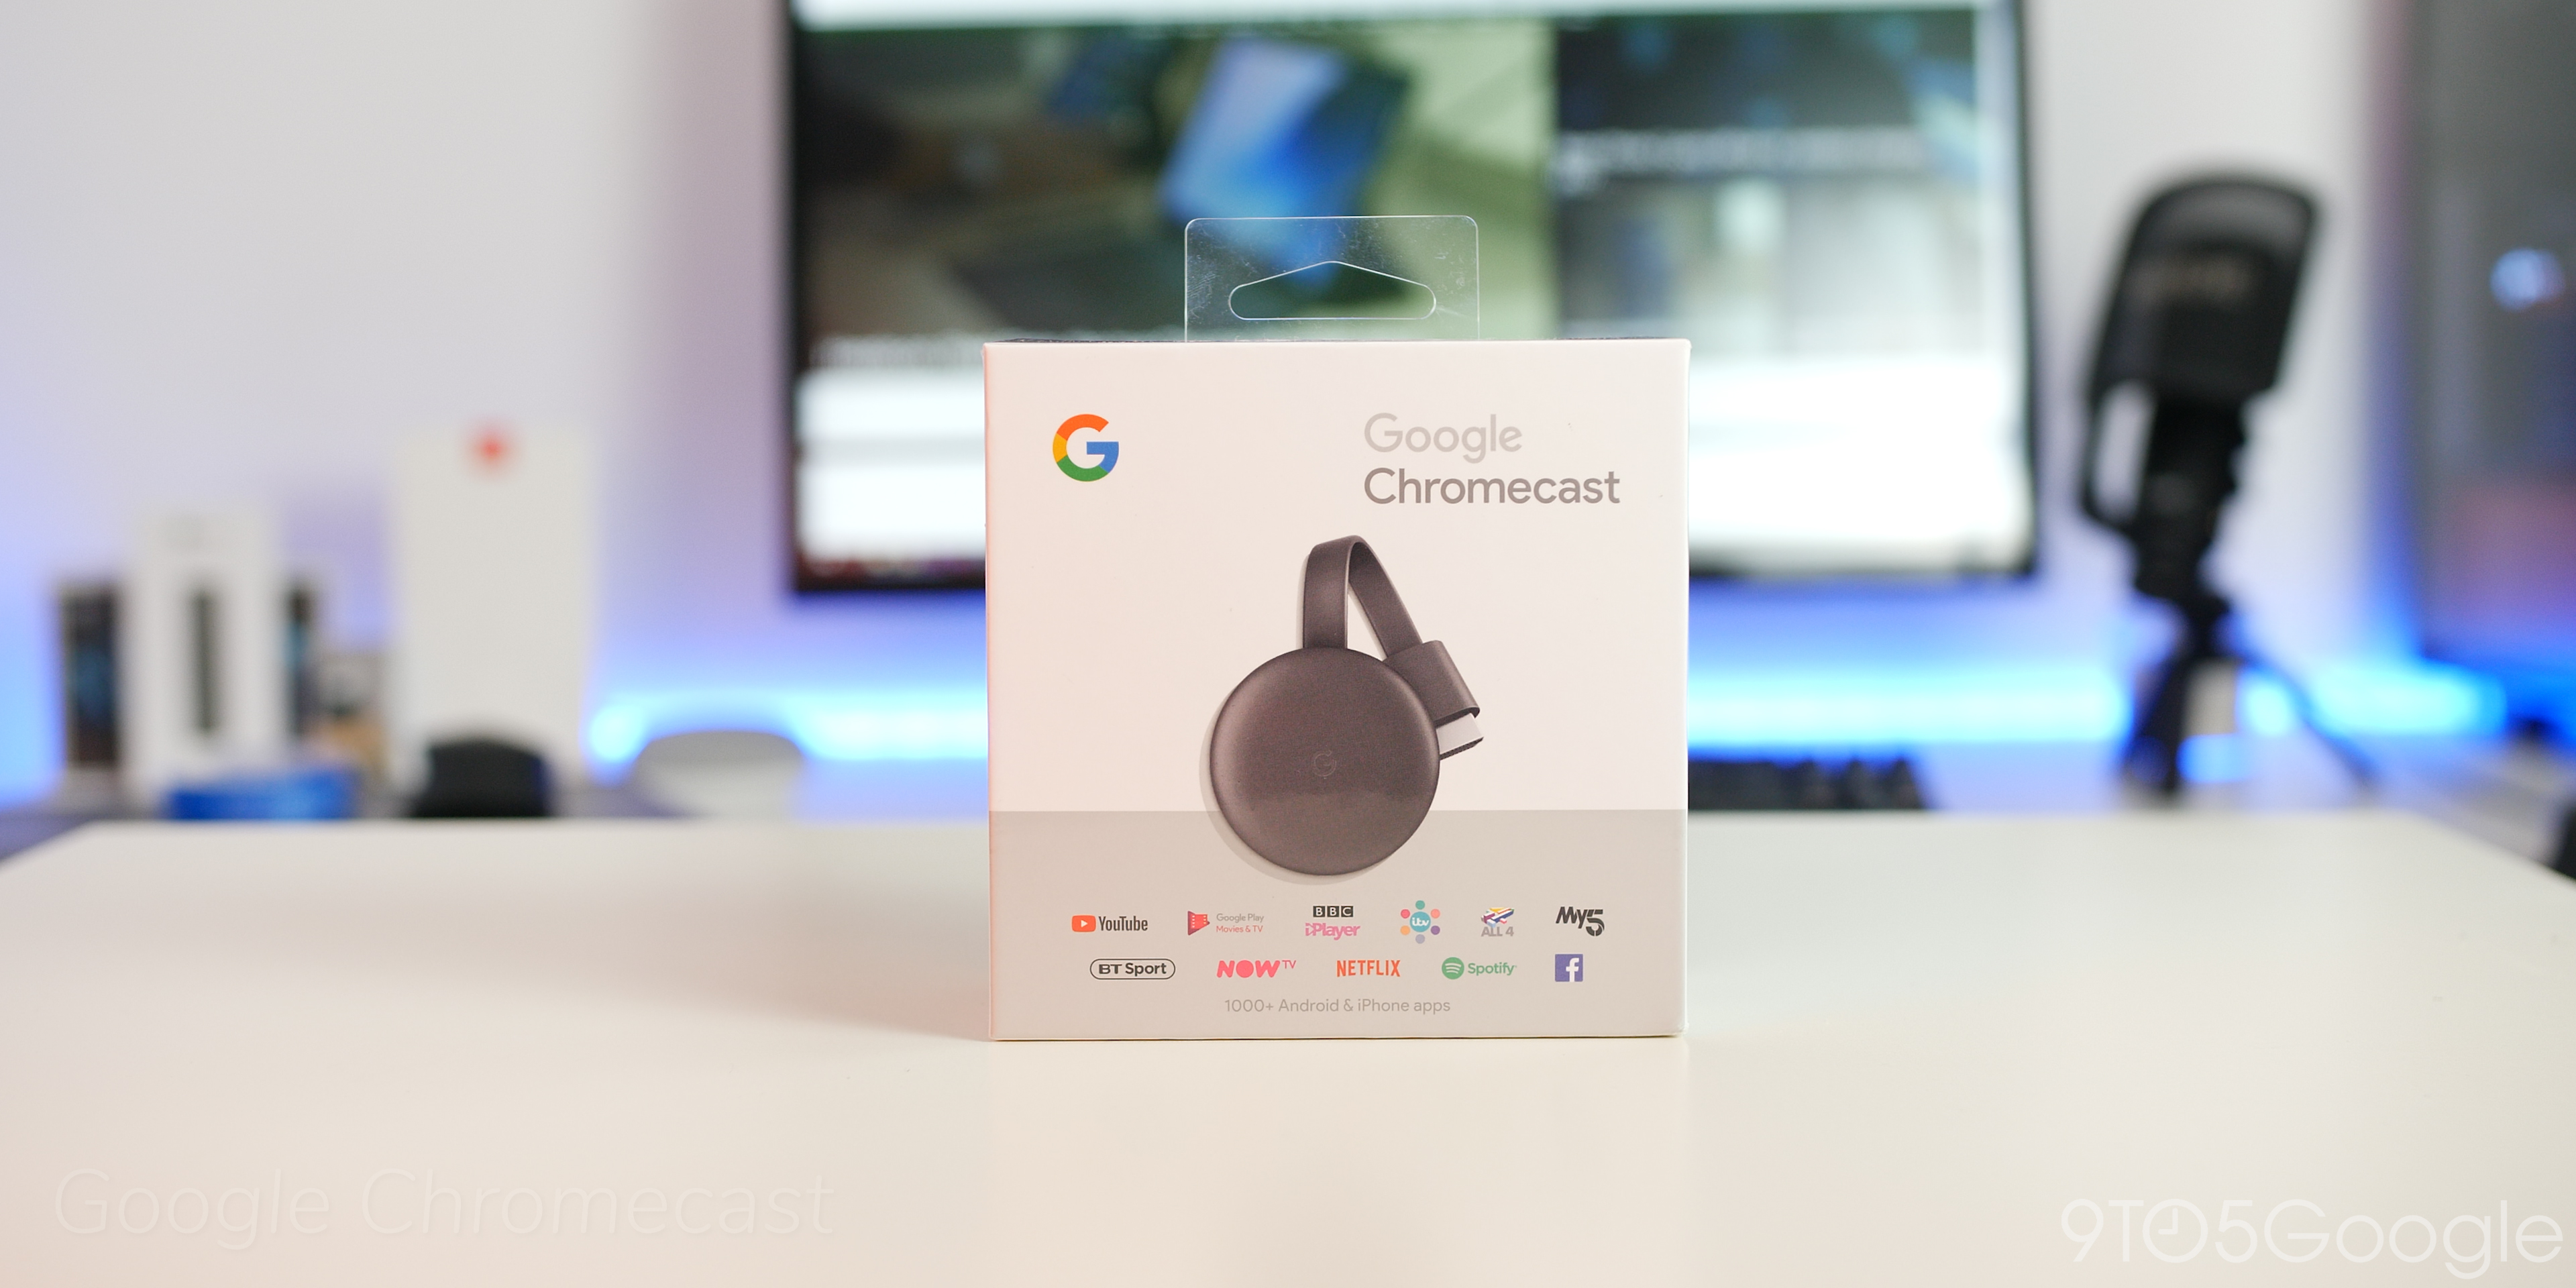 Chromecast pricing